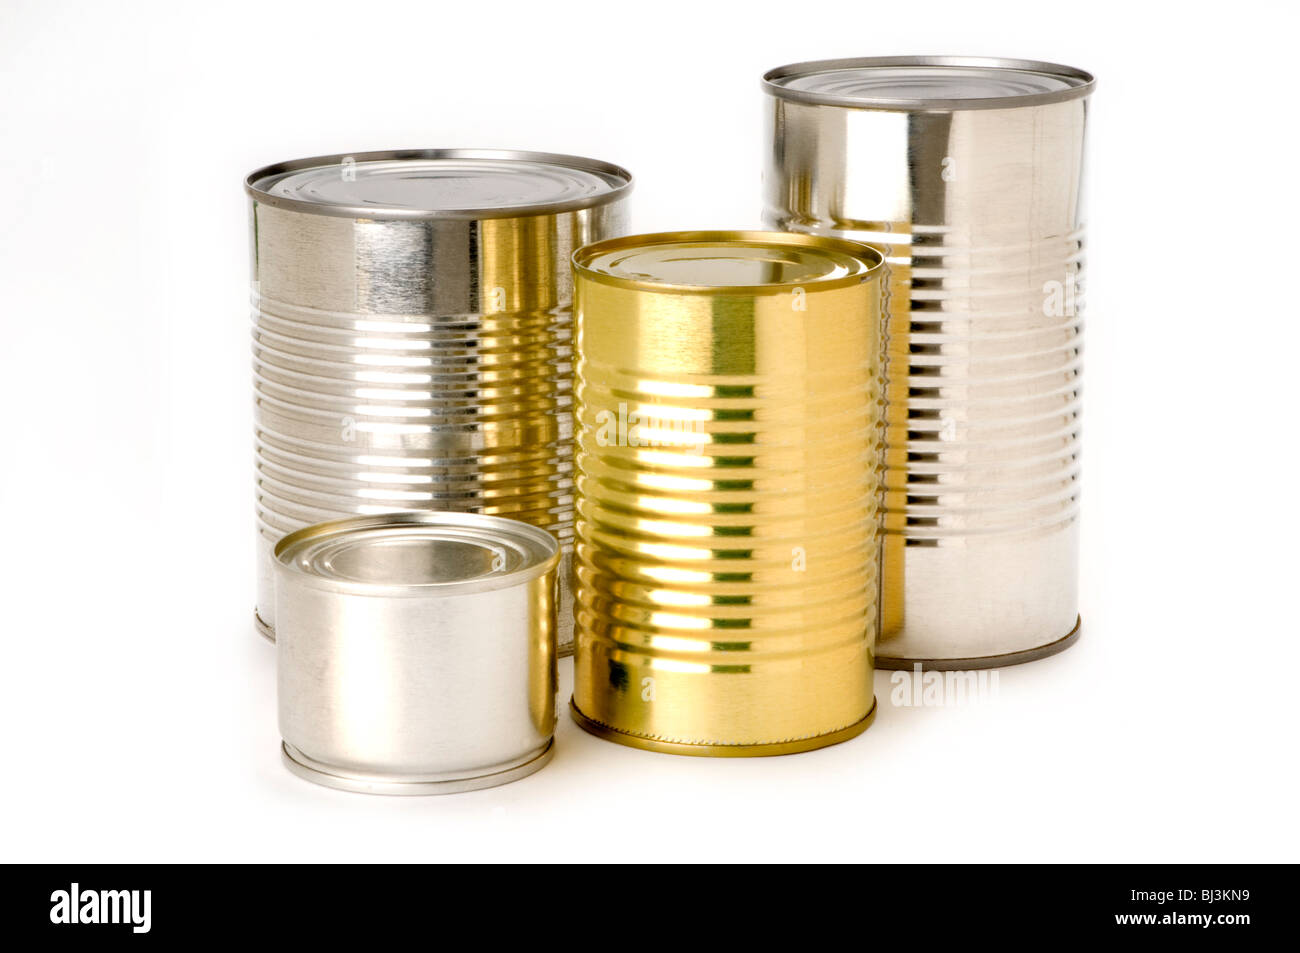 tin cans on white background - Stock Image